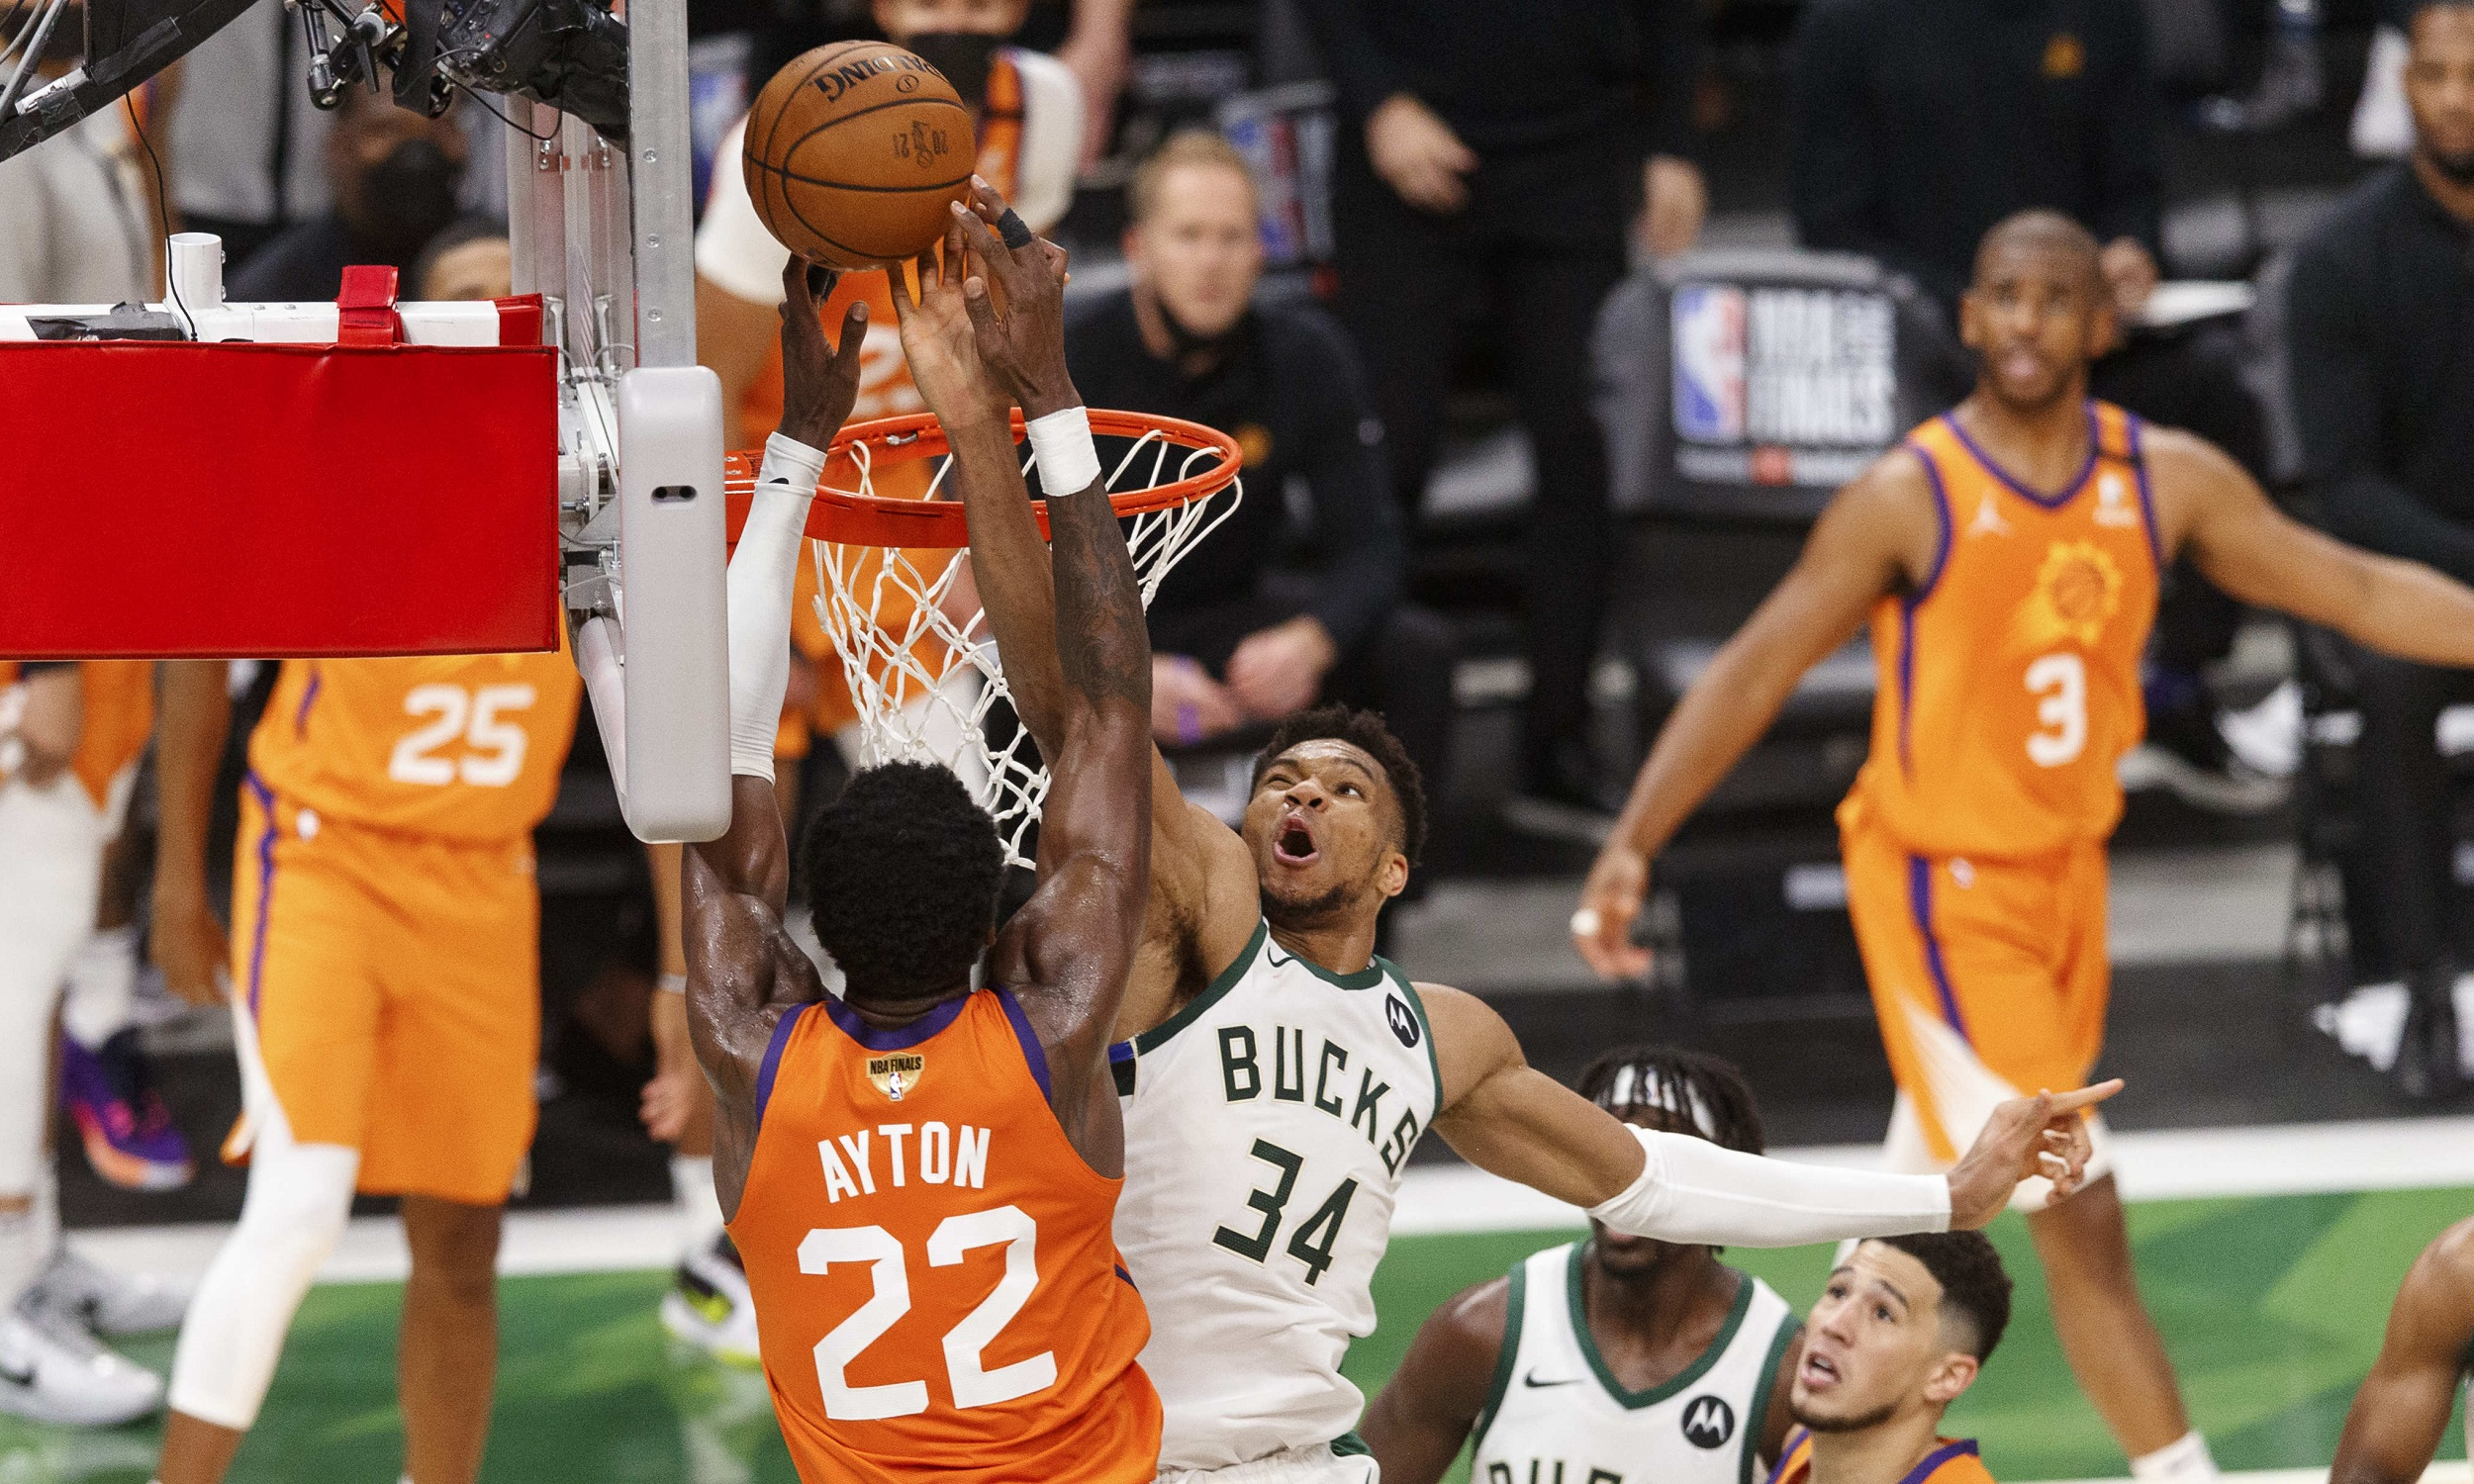 Top blocks from 2021 playoffs and Finals